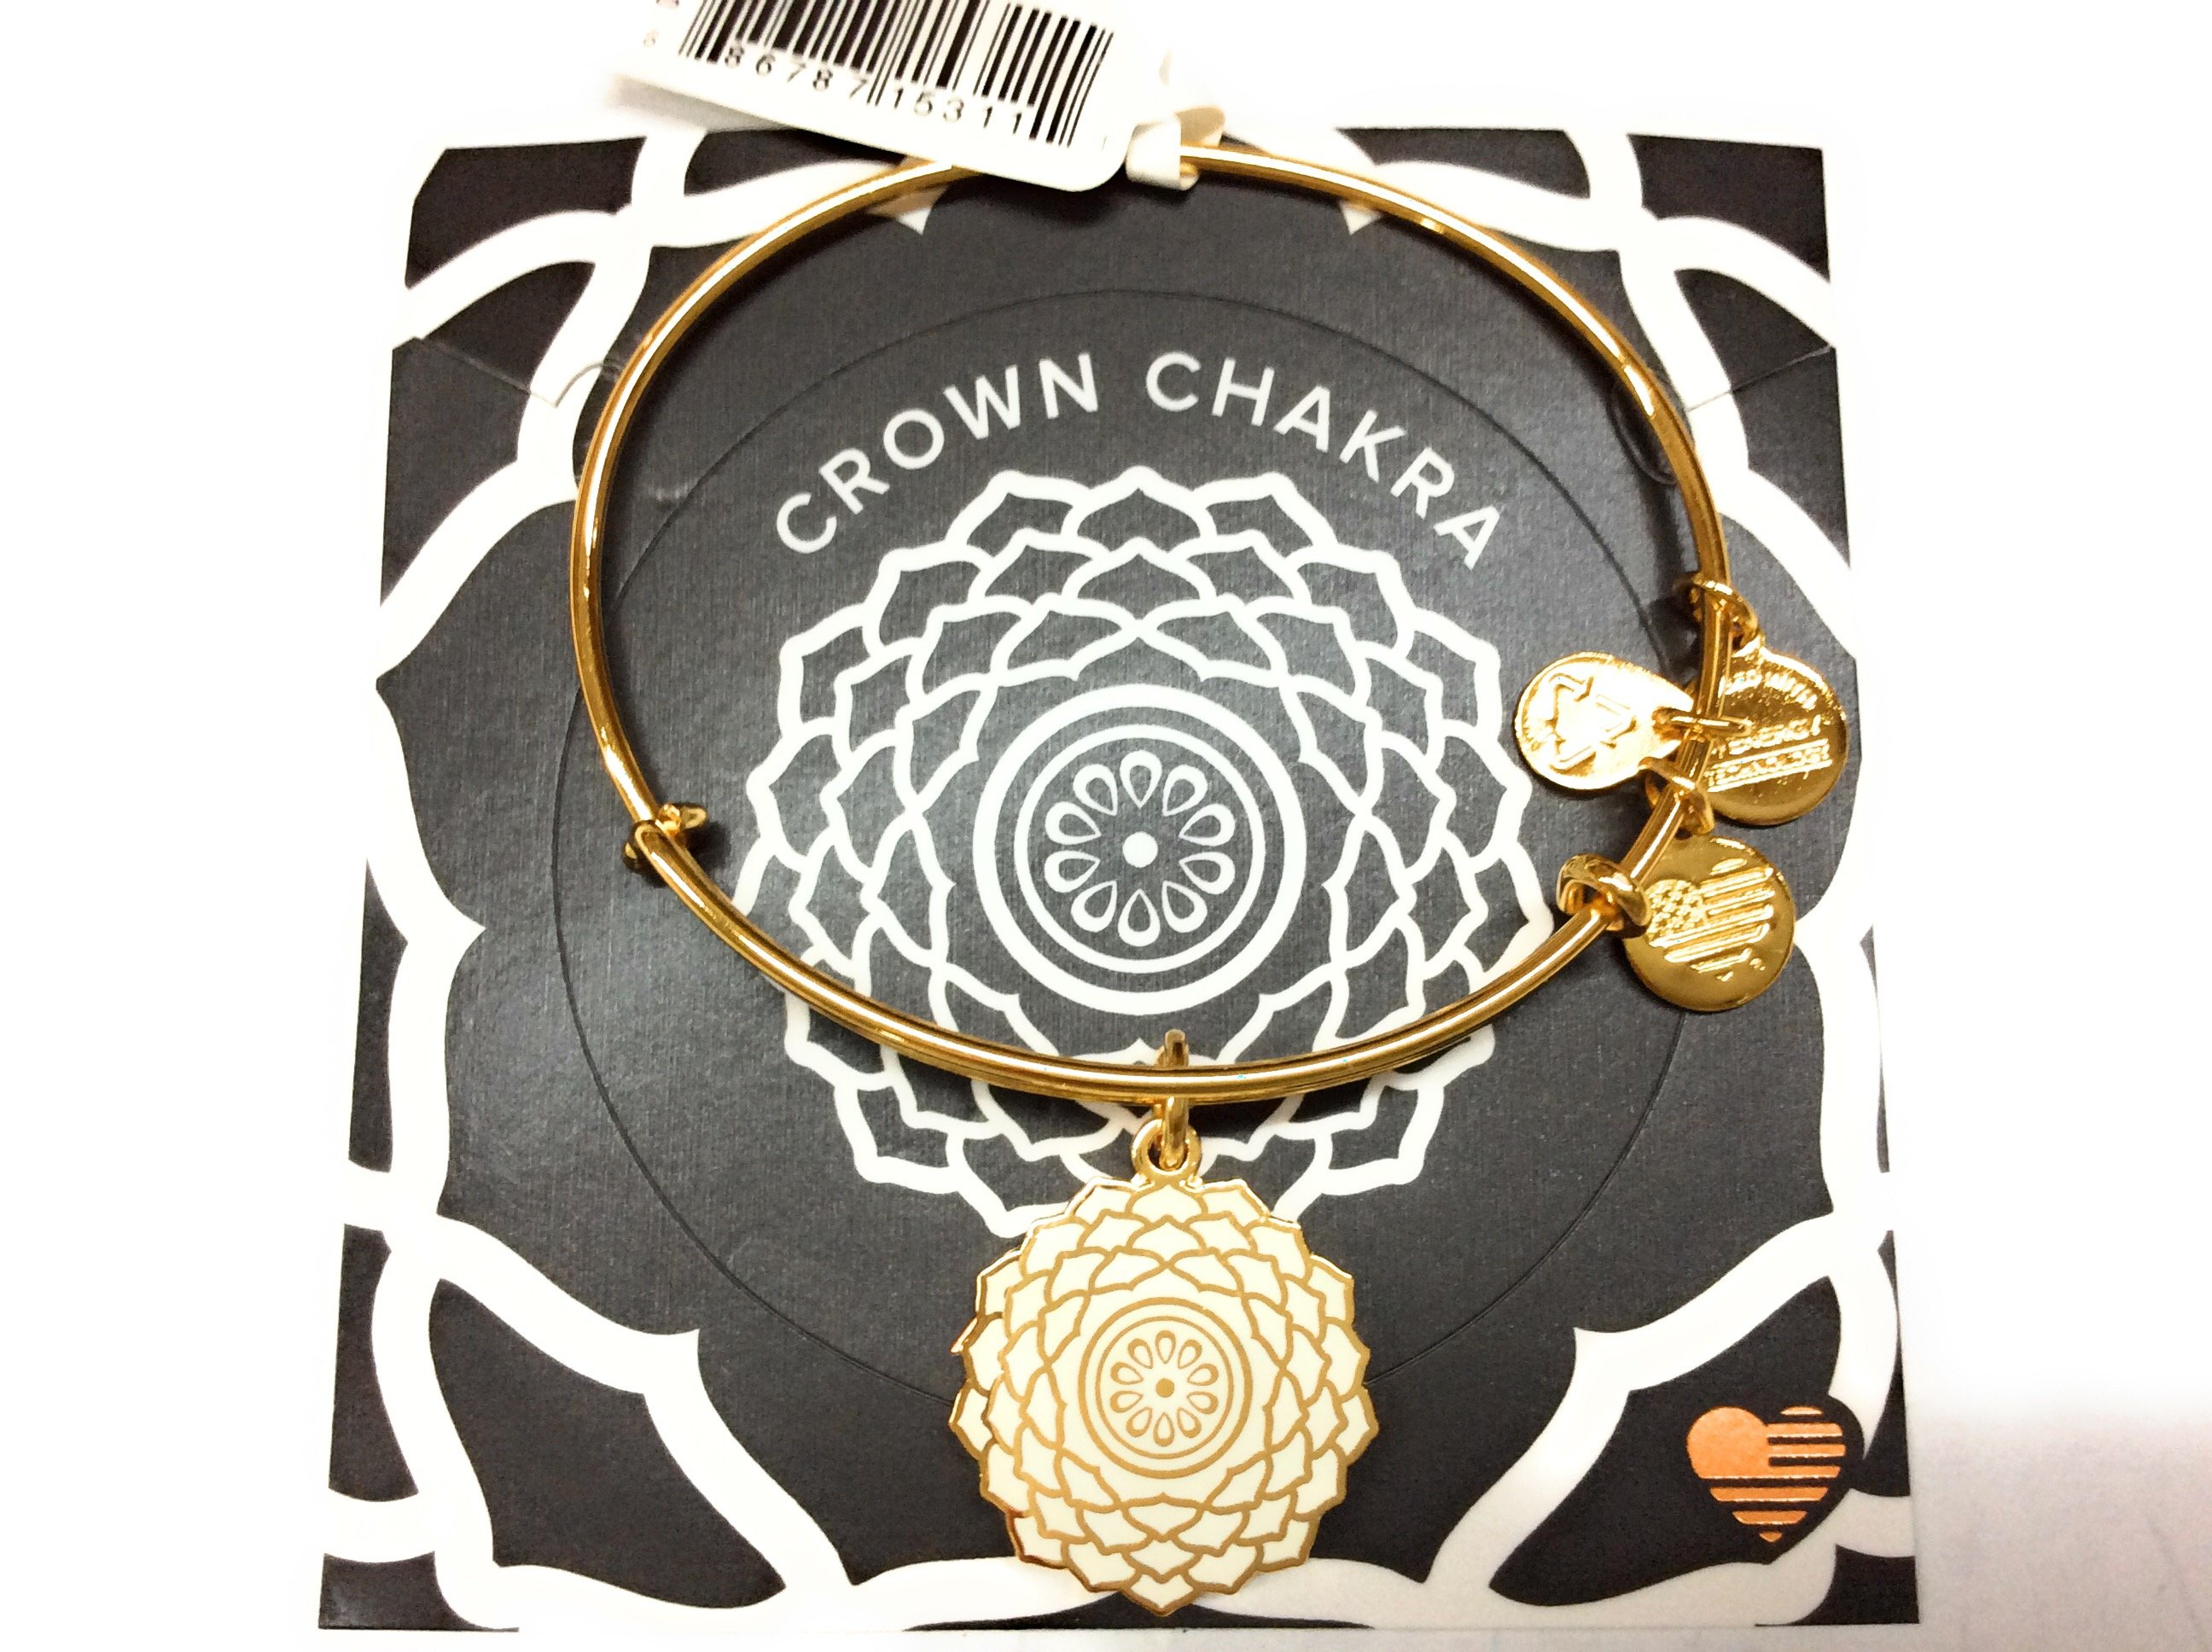 Details About Alex And Ani The Crown Chakra Bangle Bracelet Shiny Gold Nwtbc